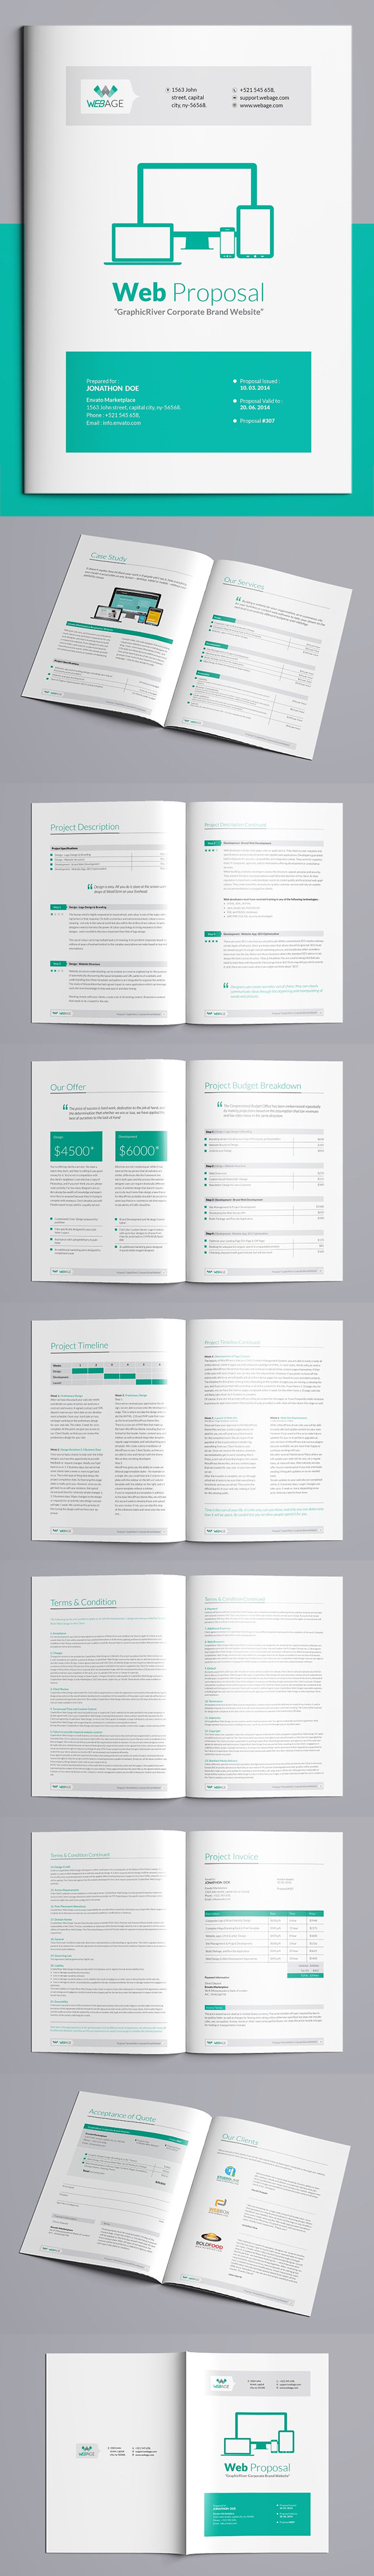 100 Professional Corporate Brochure Templates - 72